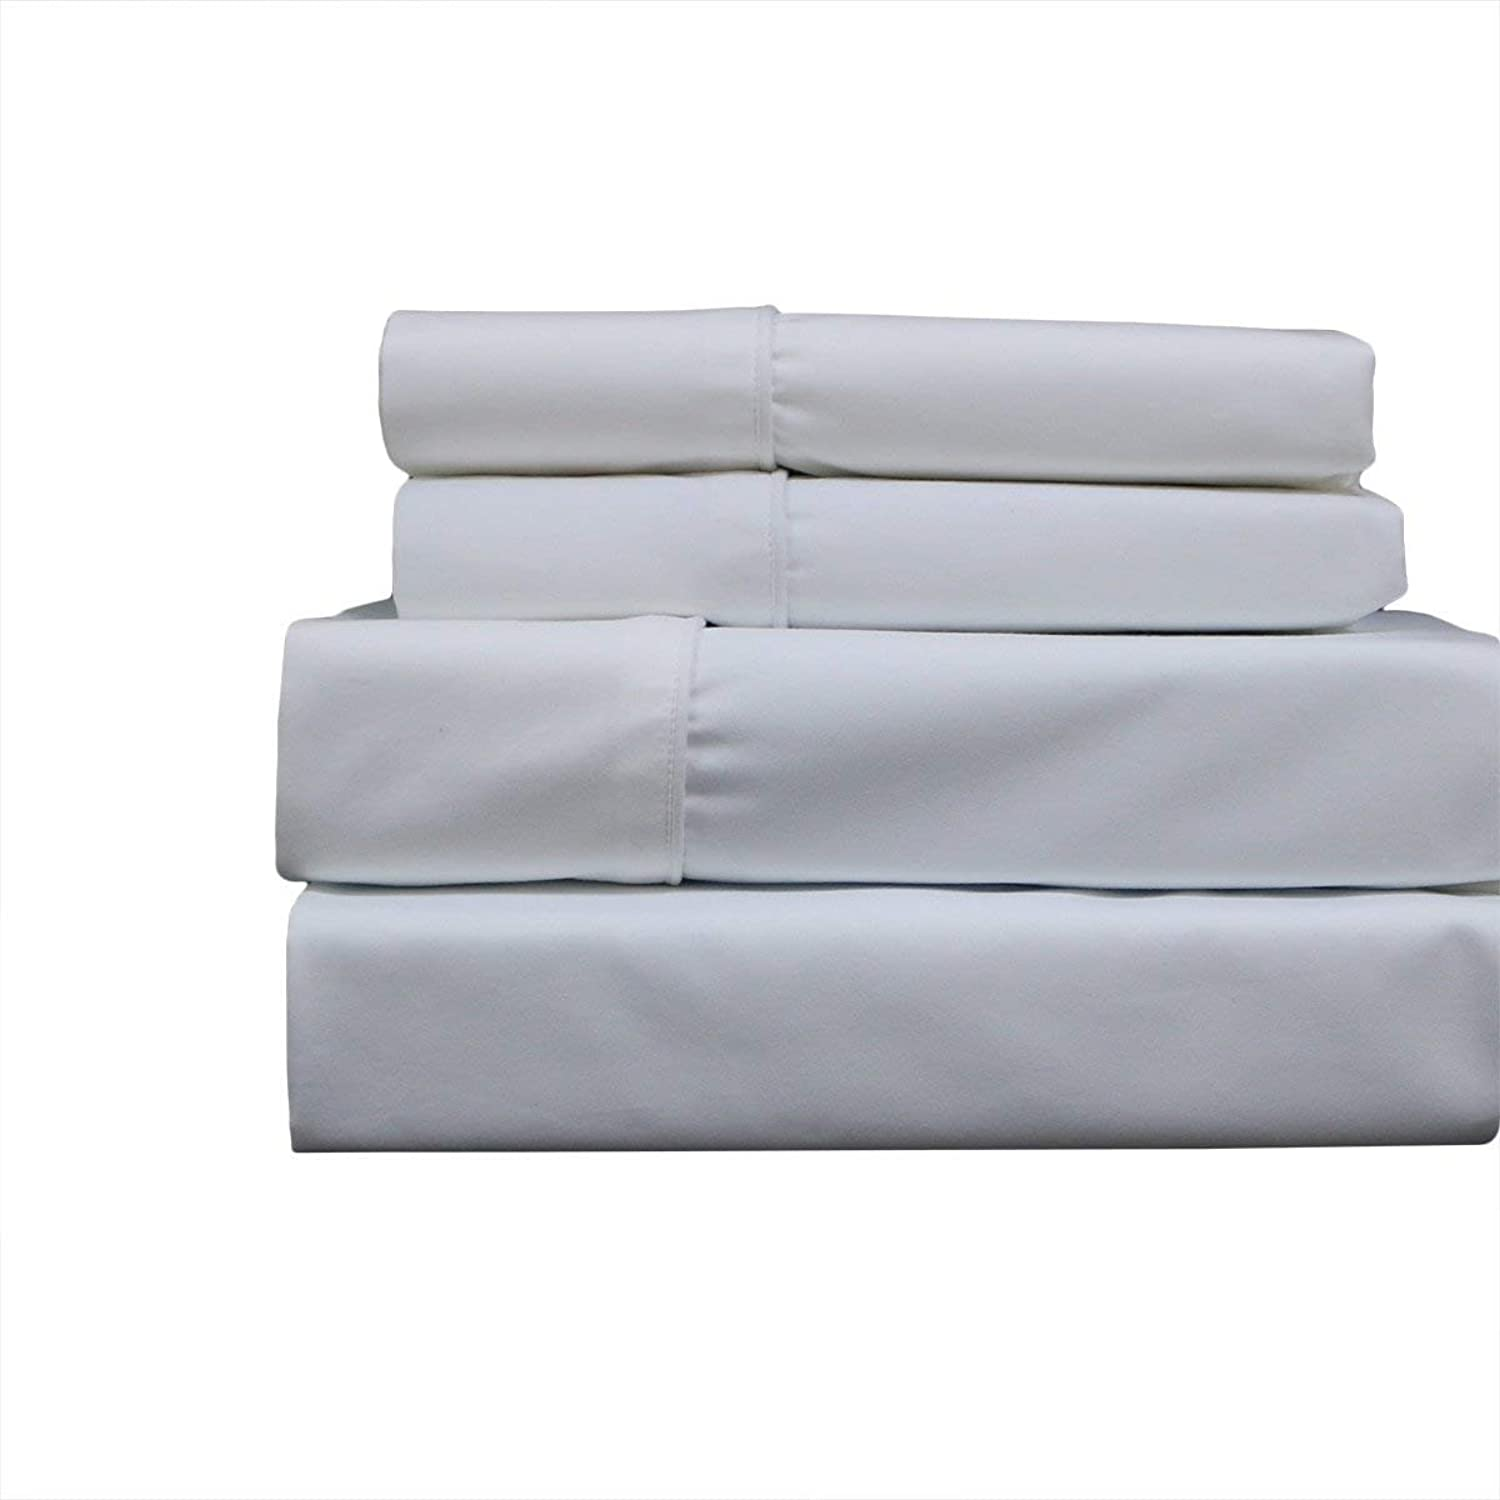 Sheetsnthings Bed Sheet Set, 650 Thread Count -California Queen, Solid White- Soft, Cotton Blend, 4PC Sheets